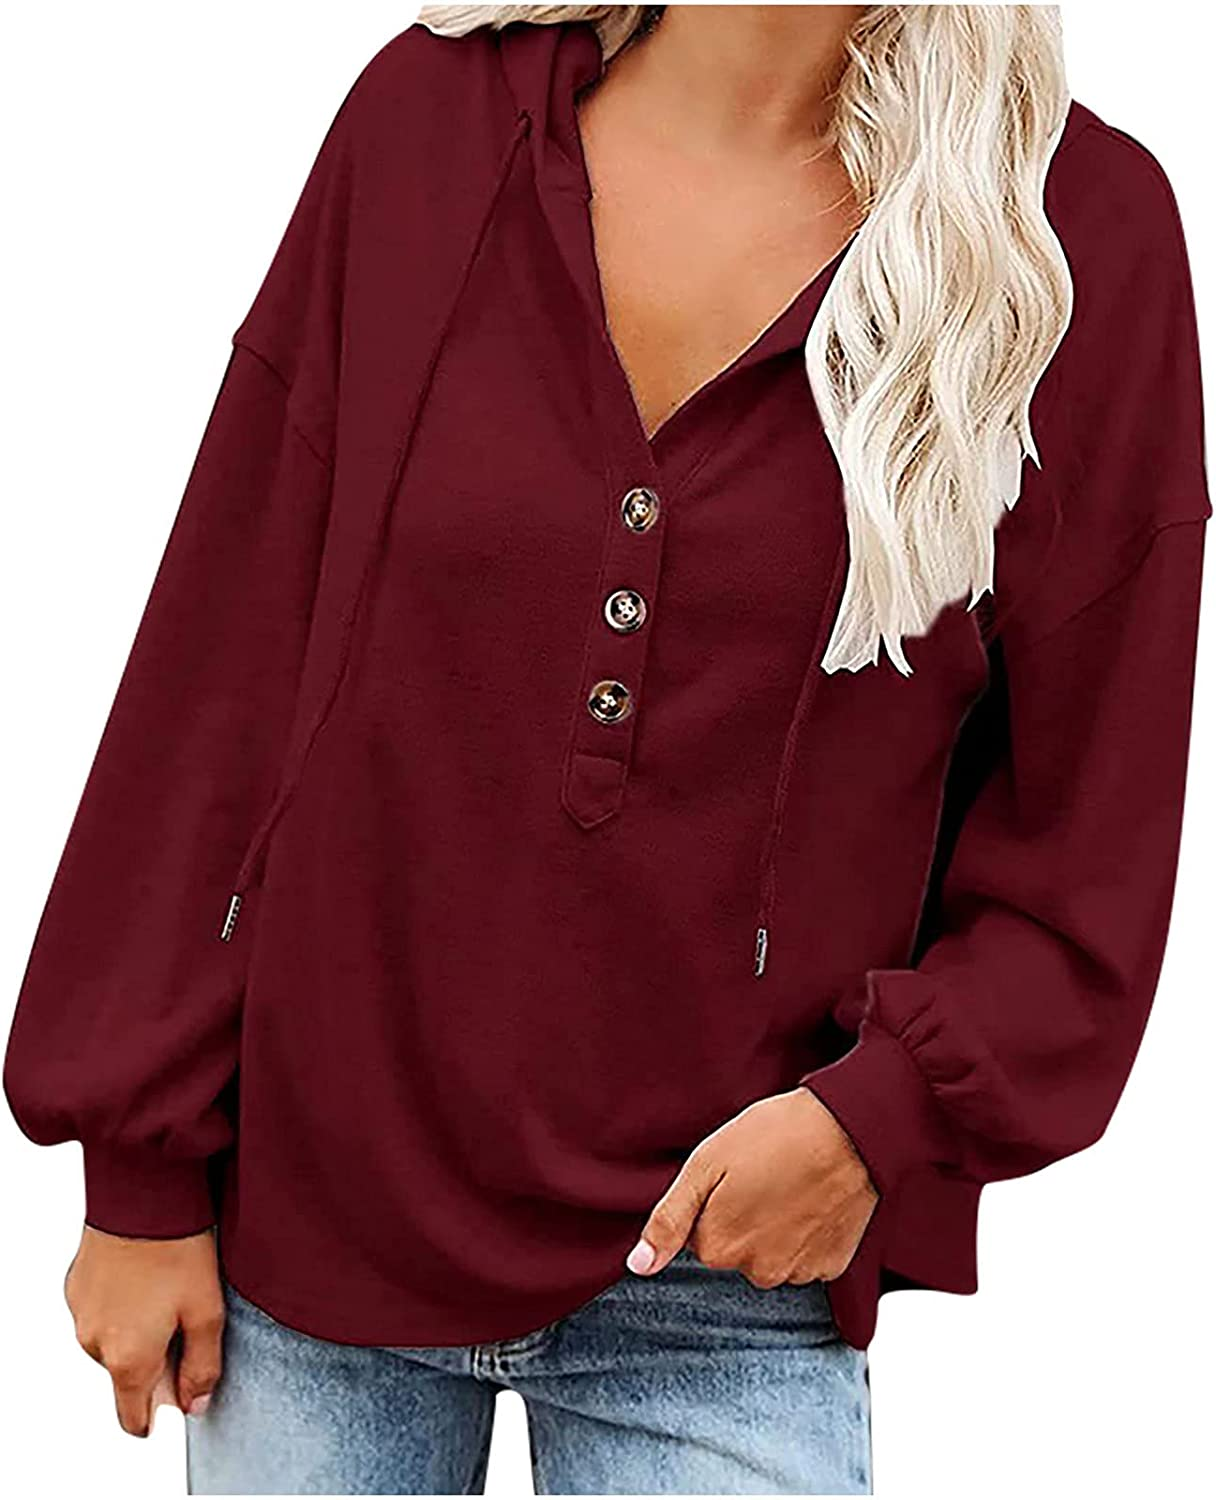 Loose Womens Tops V-Neck Button T-Shirts Casual Soild Blouses for Women Long Sleeve Drawstring Hooded Pullover